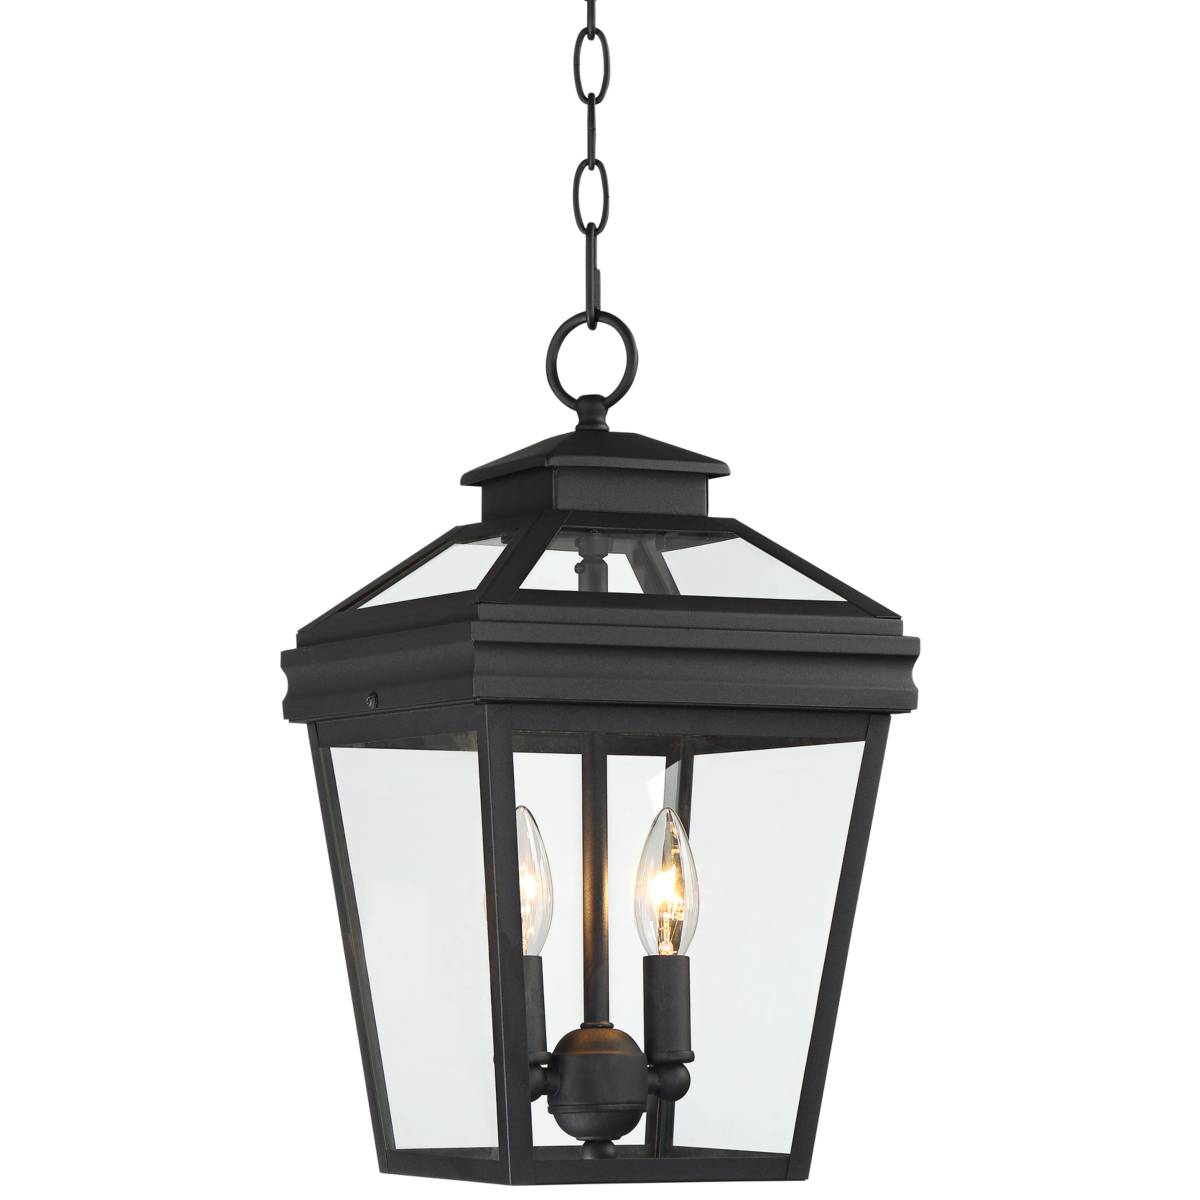 Country - Cottage, Outdoor Lighting - Page 3 | Lamps Plus